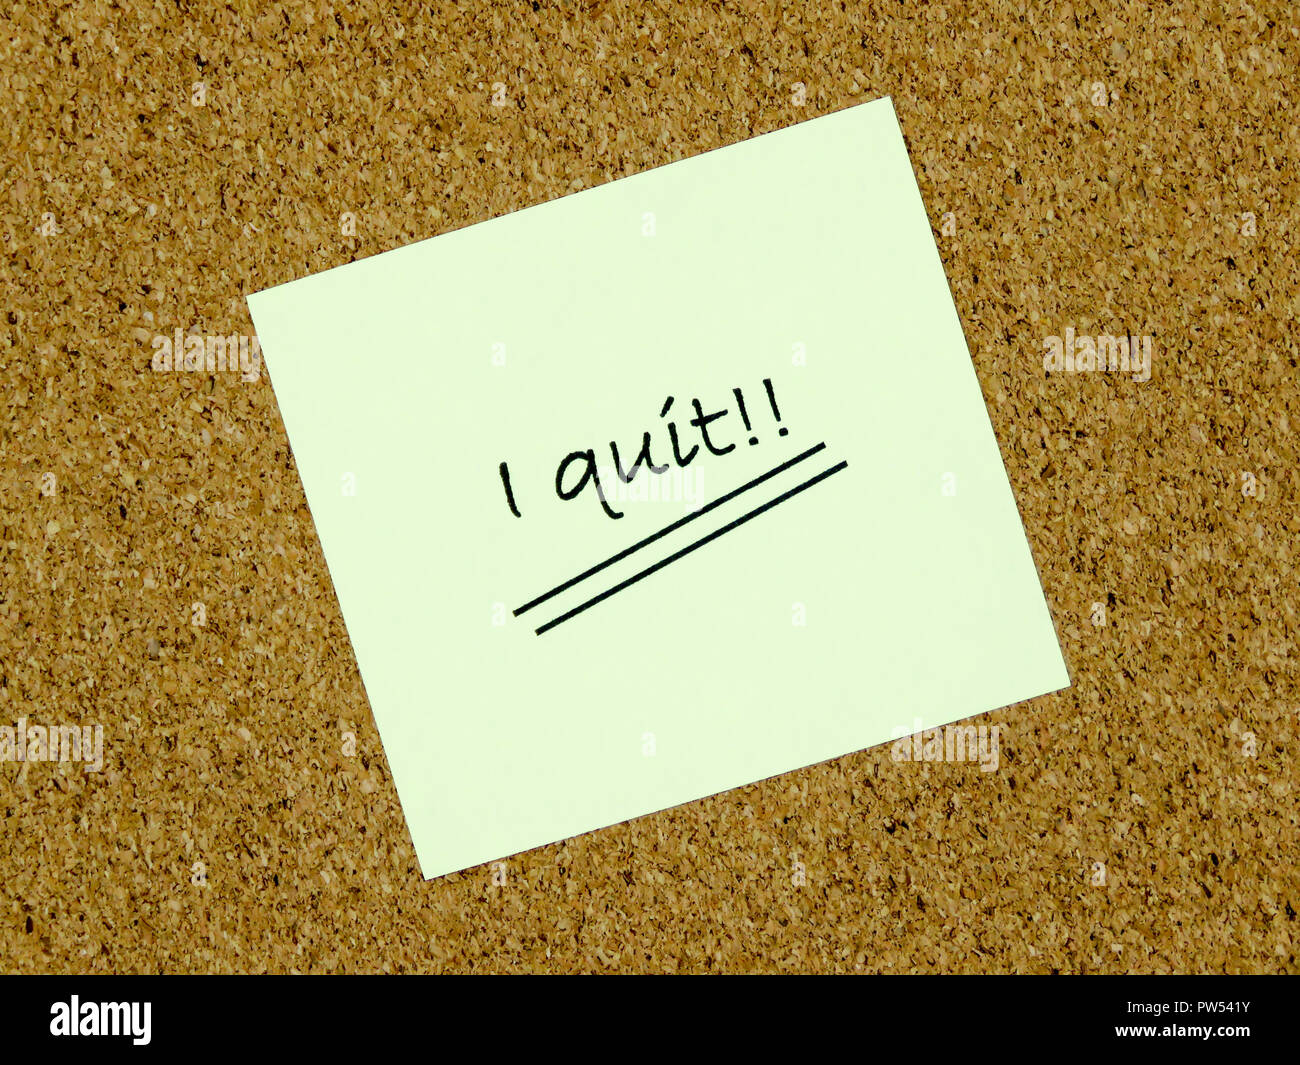 A yellow sticky note with I quit written on it on a cork board background - Stock Image